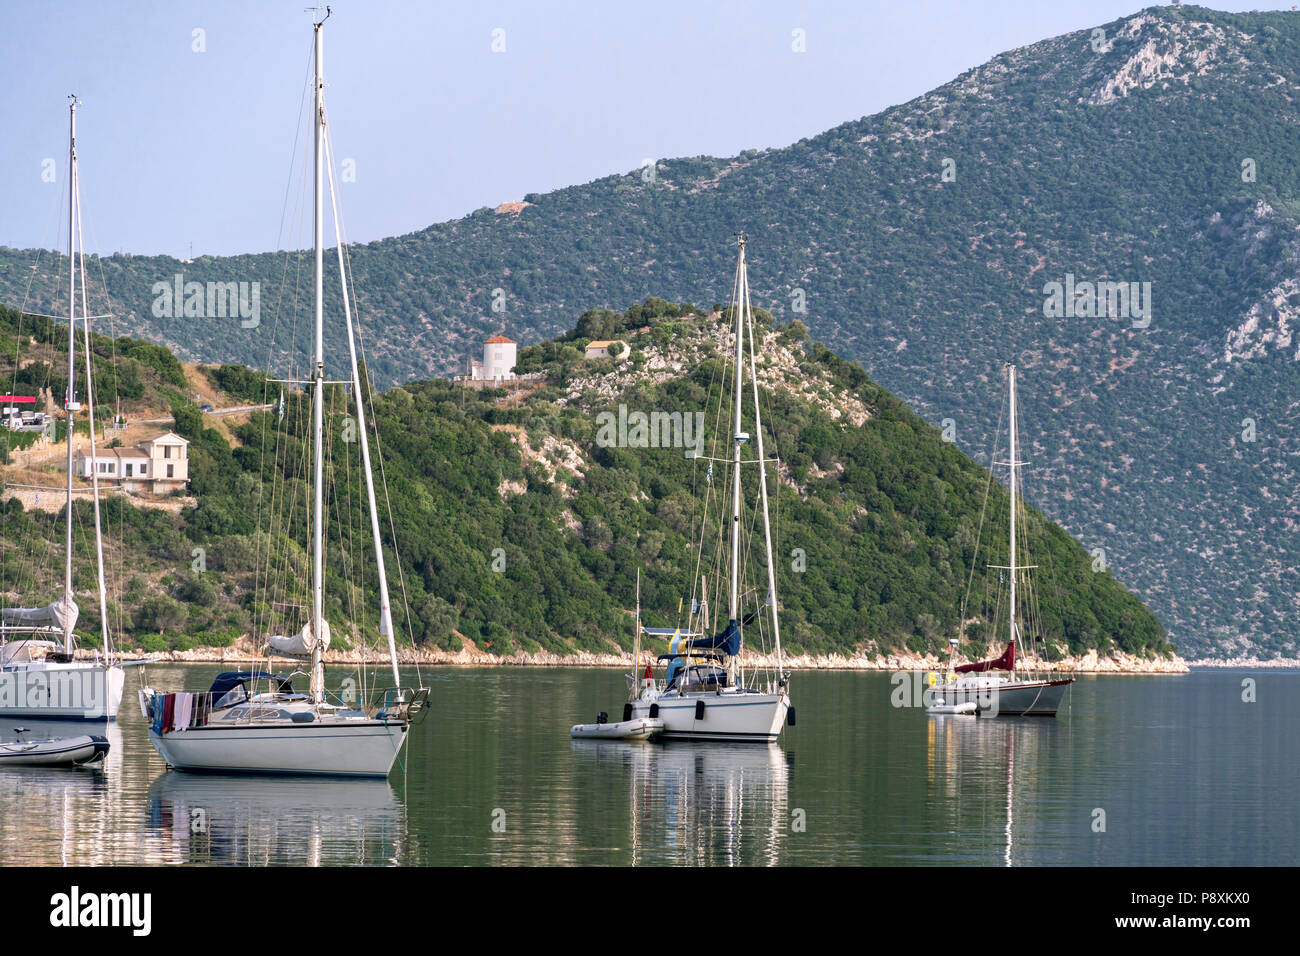 Yachts moored in Vathy harbour. On the island of Ithaca, Ionian Sea, Greece - Stock Image